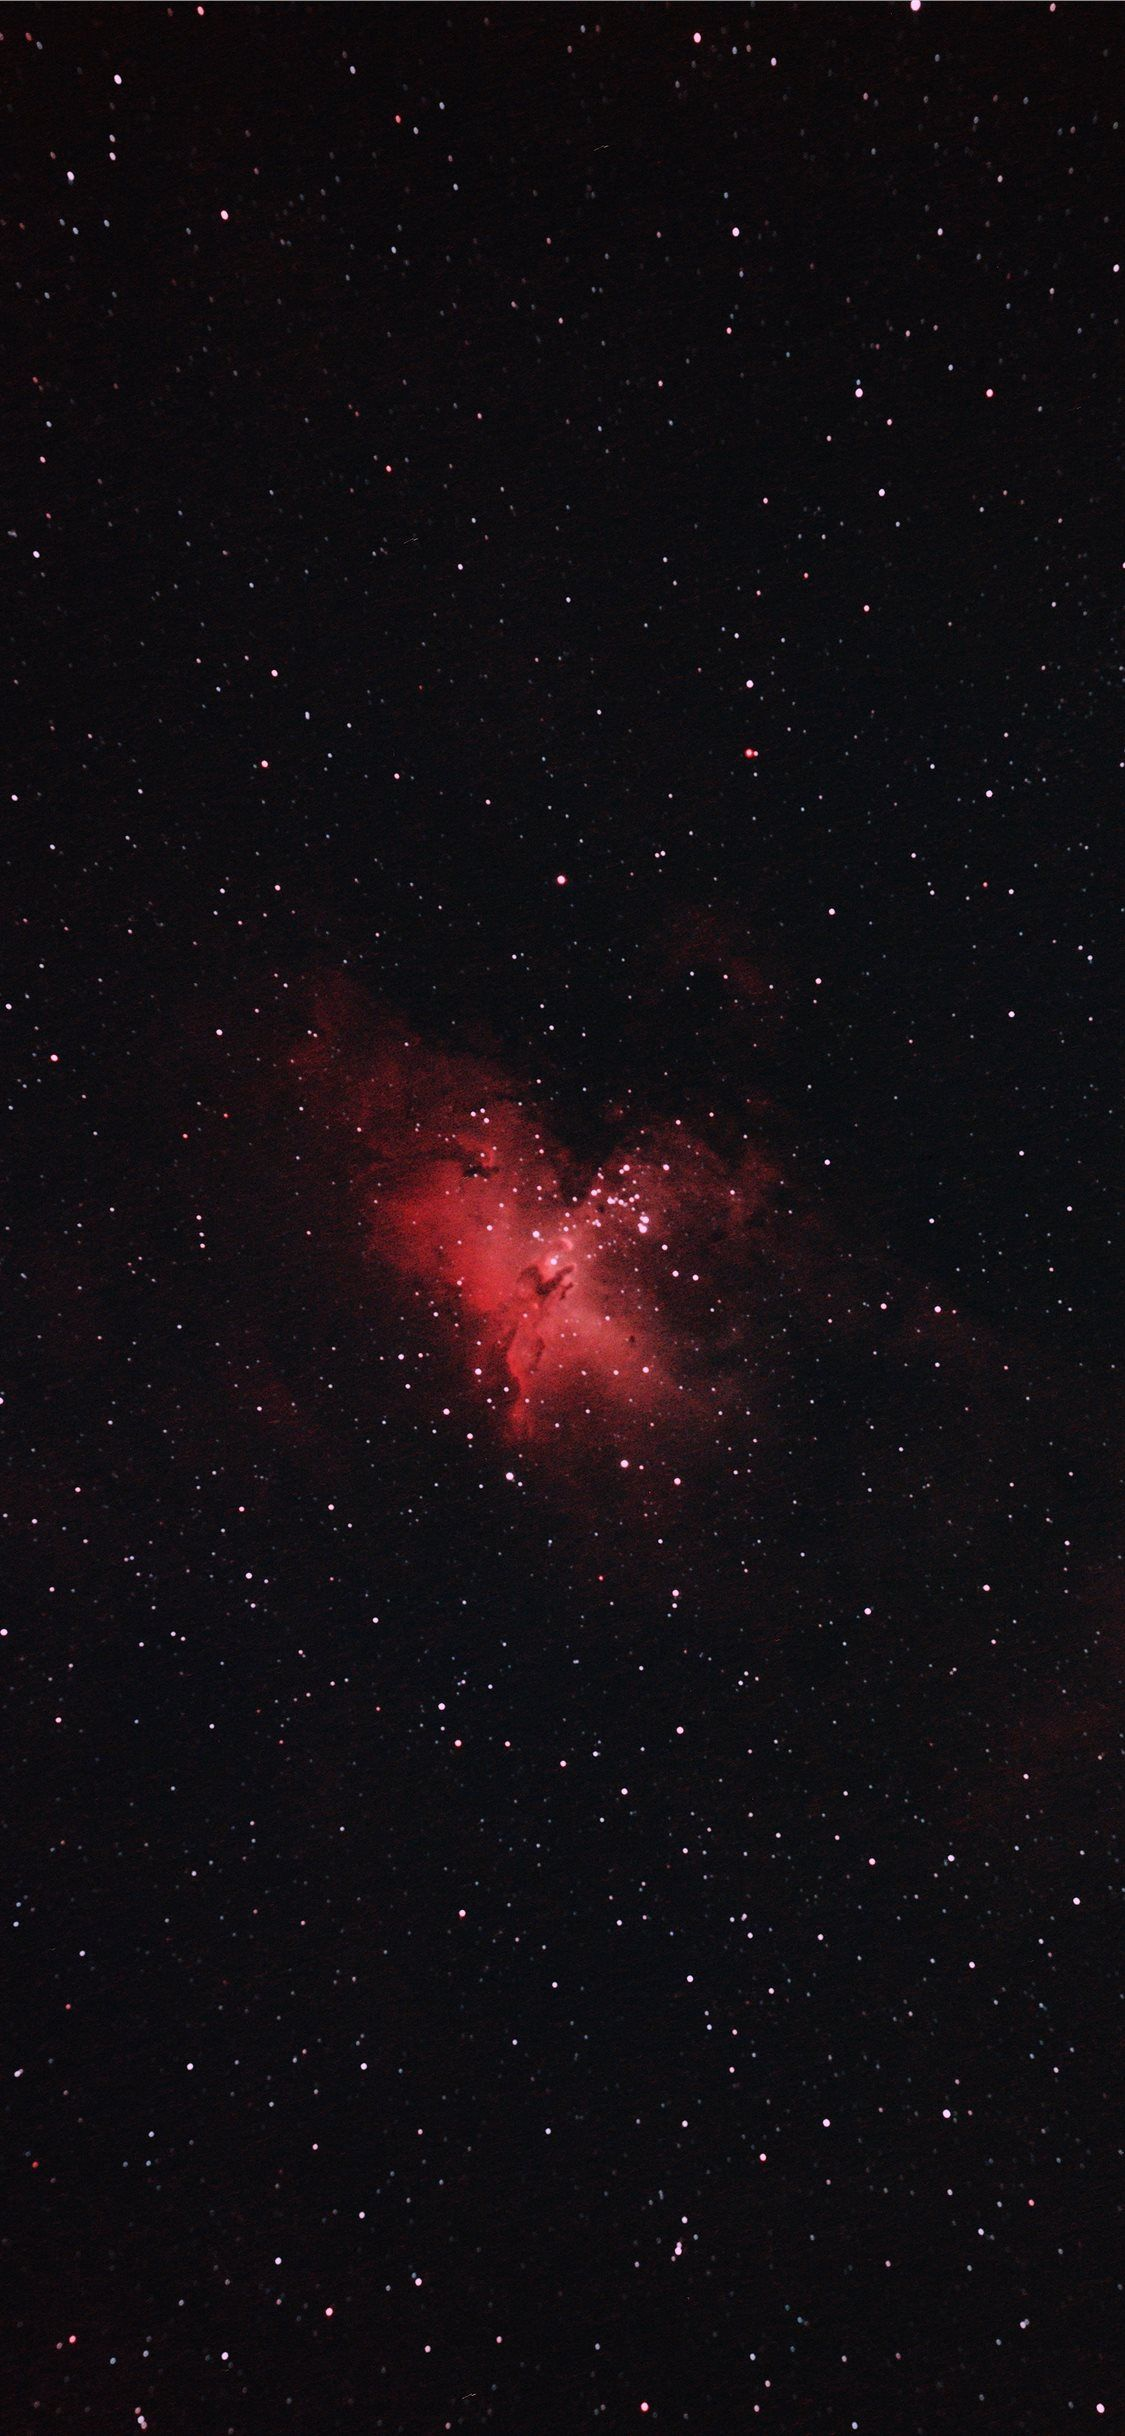 Red And Black Galaxy Illustration Space Outerspace Newton Ma Usa Iphonexwallpaper Galaxy Wallpaper Iphone Wallpaper Galaxy Galaxy wallpaper red and black